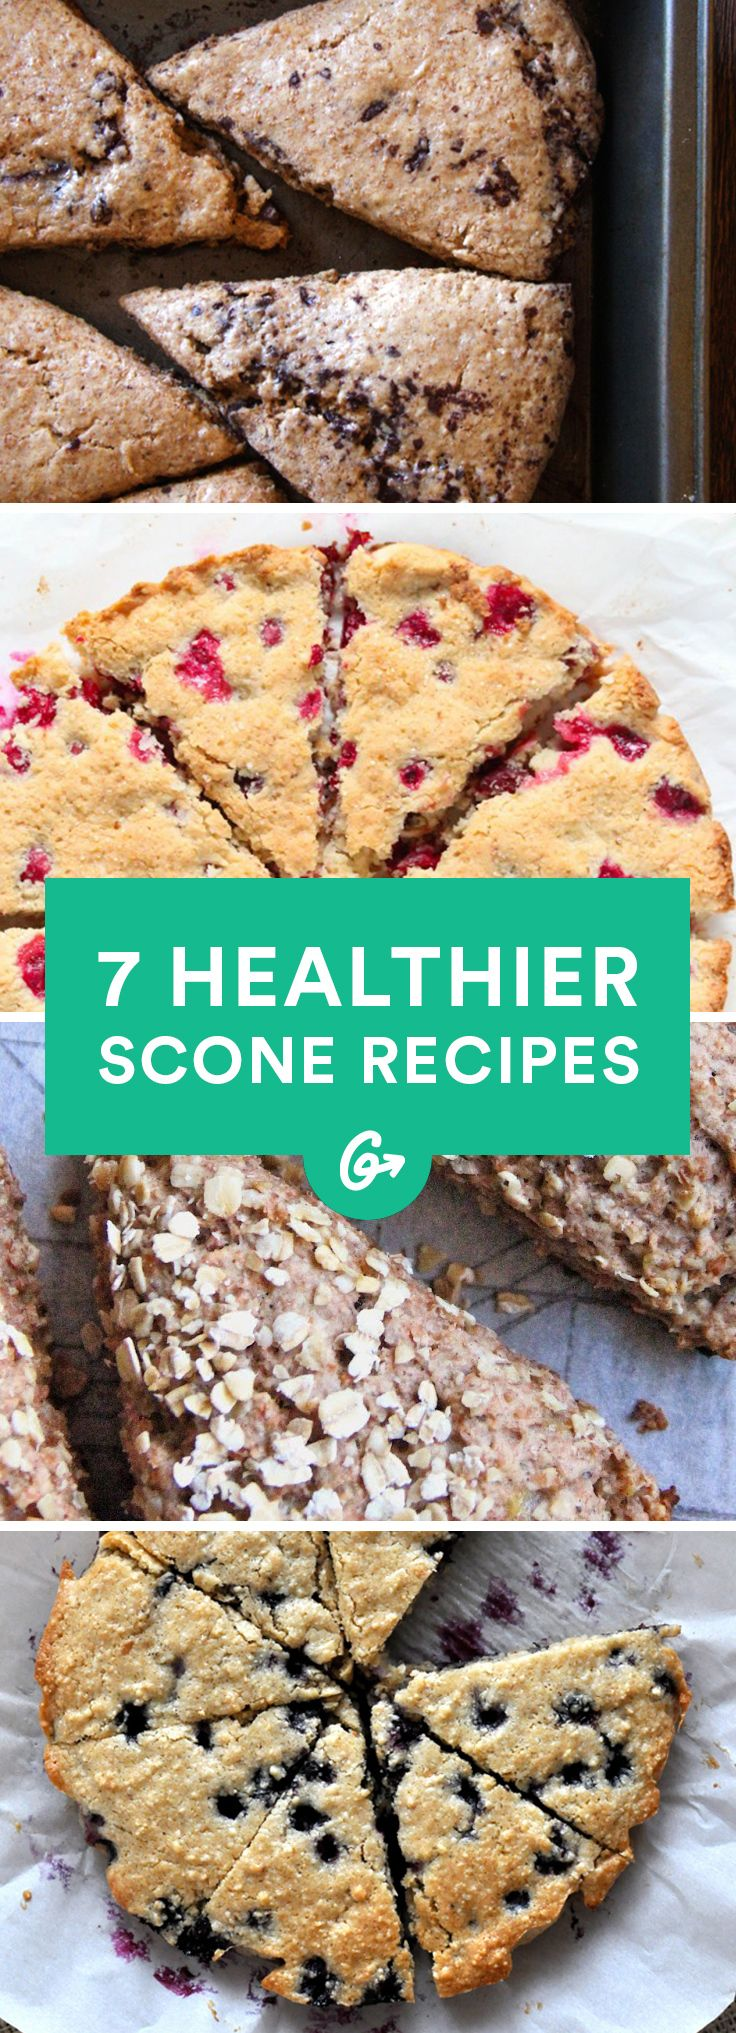 Low-sugar, gluten-free, paleo, and vegan options in every flavor imaginable to keep your sweet tooth satisfied #healthy #scone #recipes http://greatist.com/eat/healthy-scone-recipes